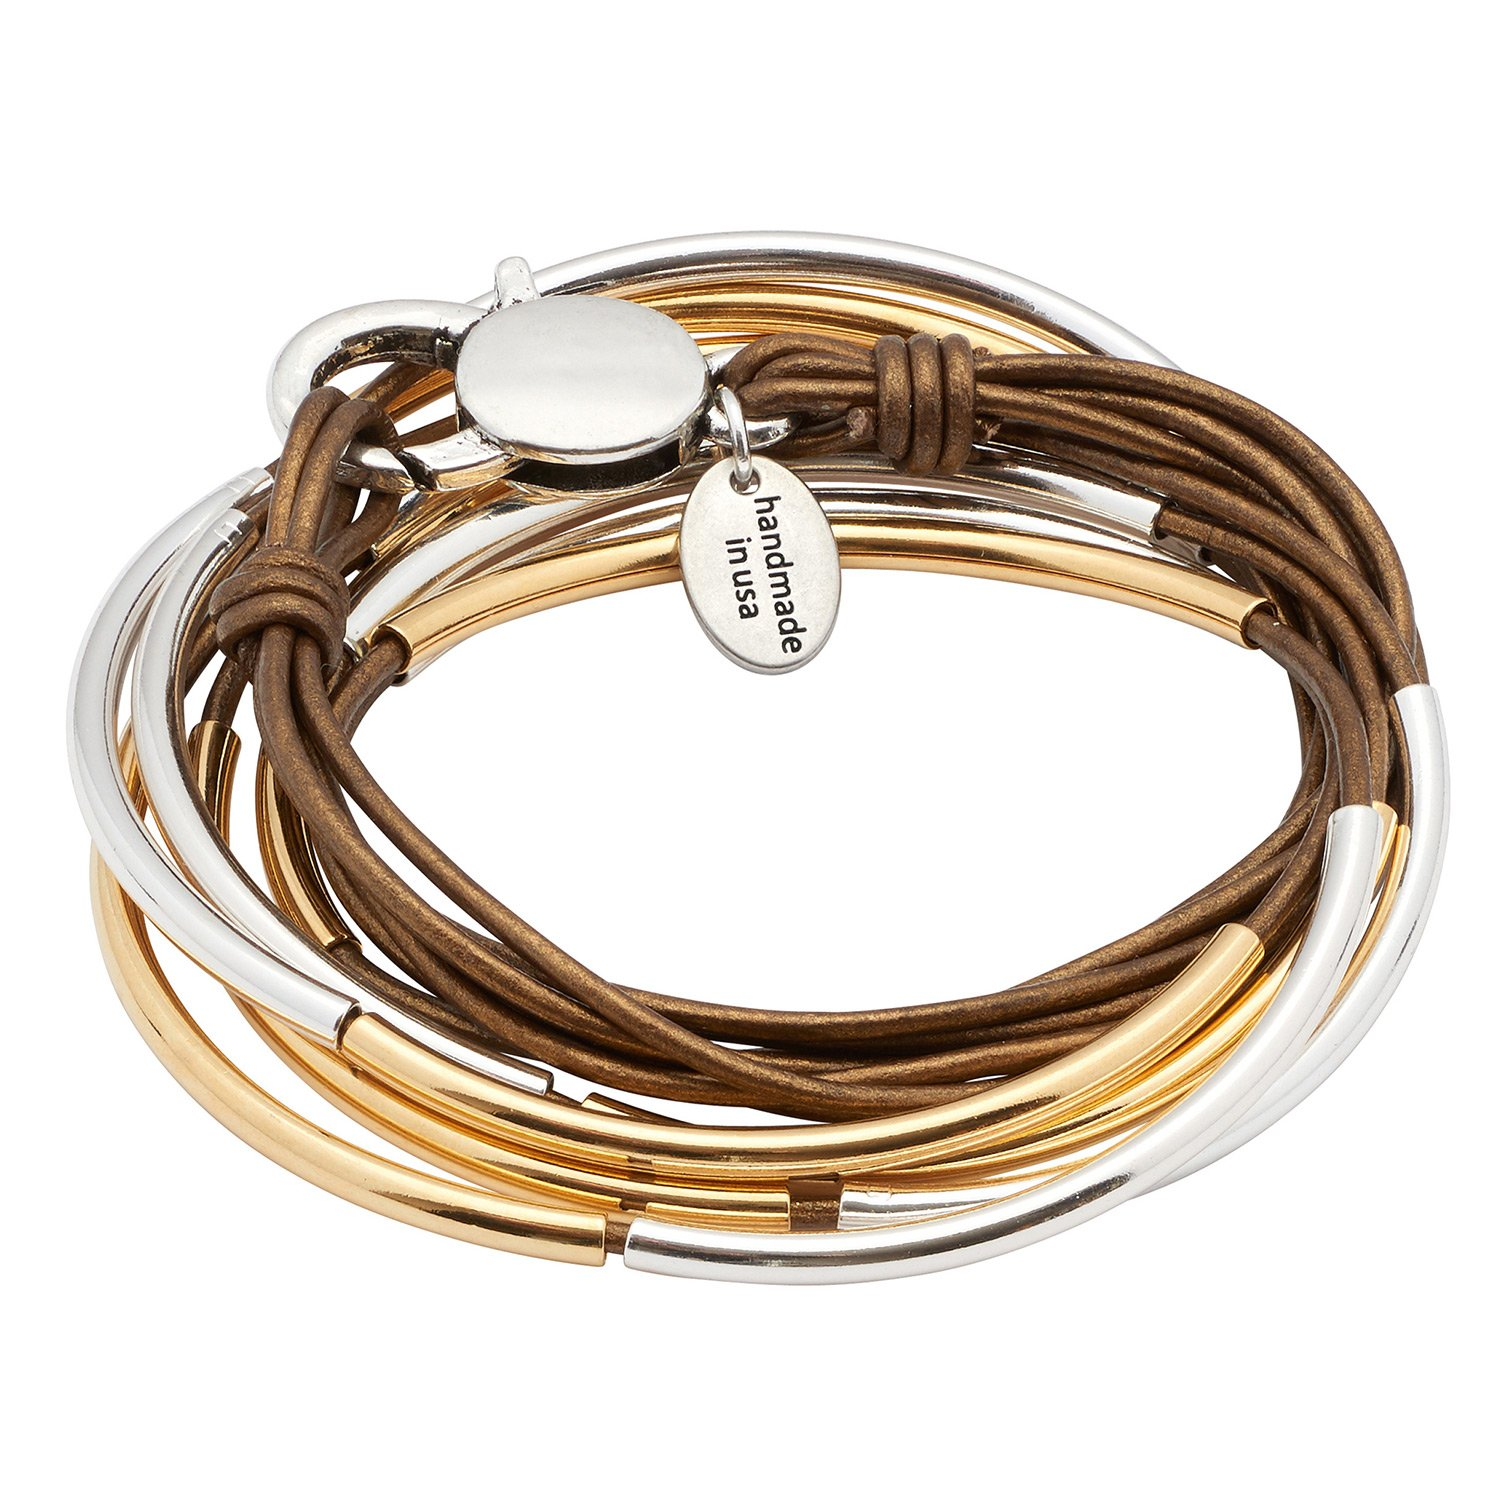 Lizzy Classic Gold & Silver 4 Strand Metallic Bronze Leather Wrap Bracelet (SMALL)